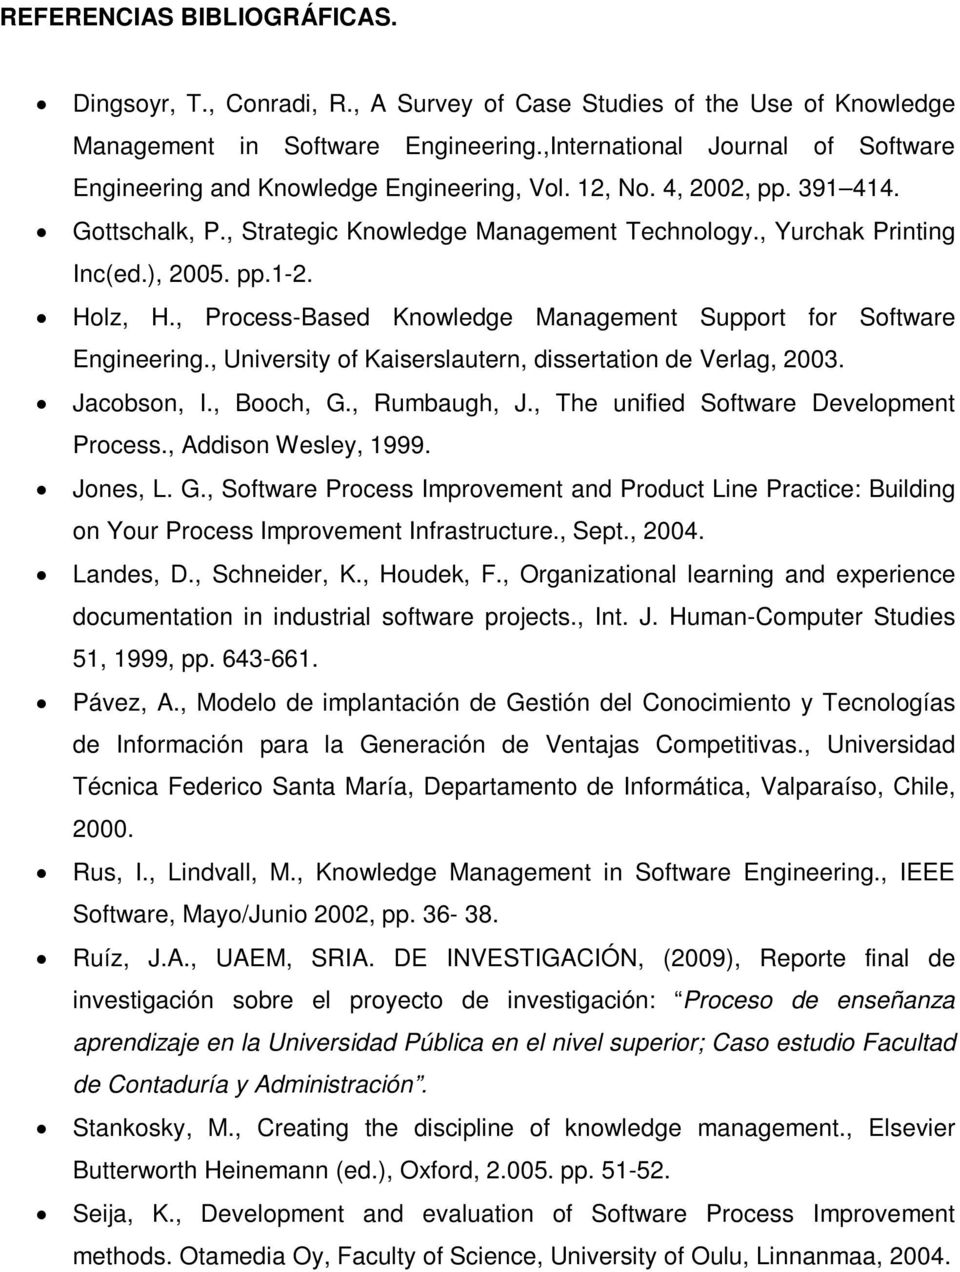 ), 2005. pp.1-2. Holz, H., Process-Based Knowledge Management Support for Software Engineering., University of Kaiserslautern, dissertation de Verlag, 2003. Jacobson, I., Booch, G., Rumbaugh, J.